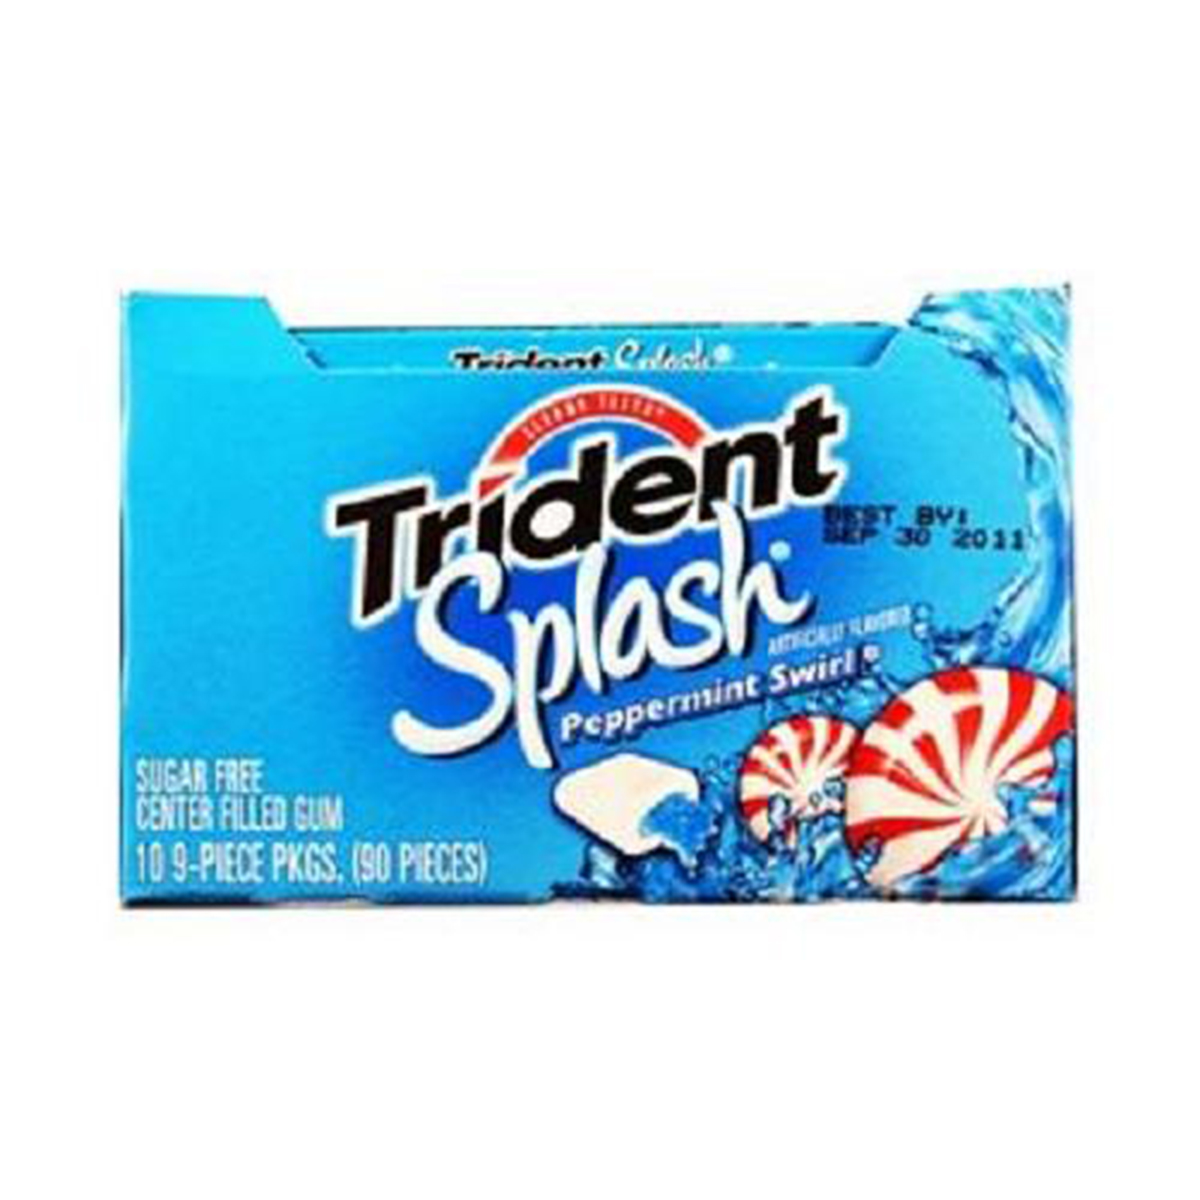 Trident Splash Sugar Free Gum (Peppermint Swirl, 9-Piece, 10-Pack)